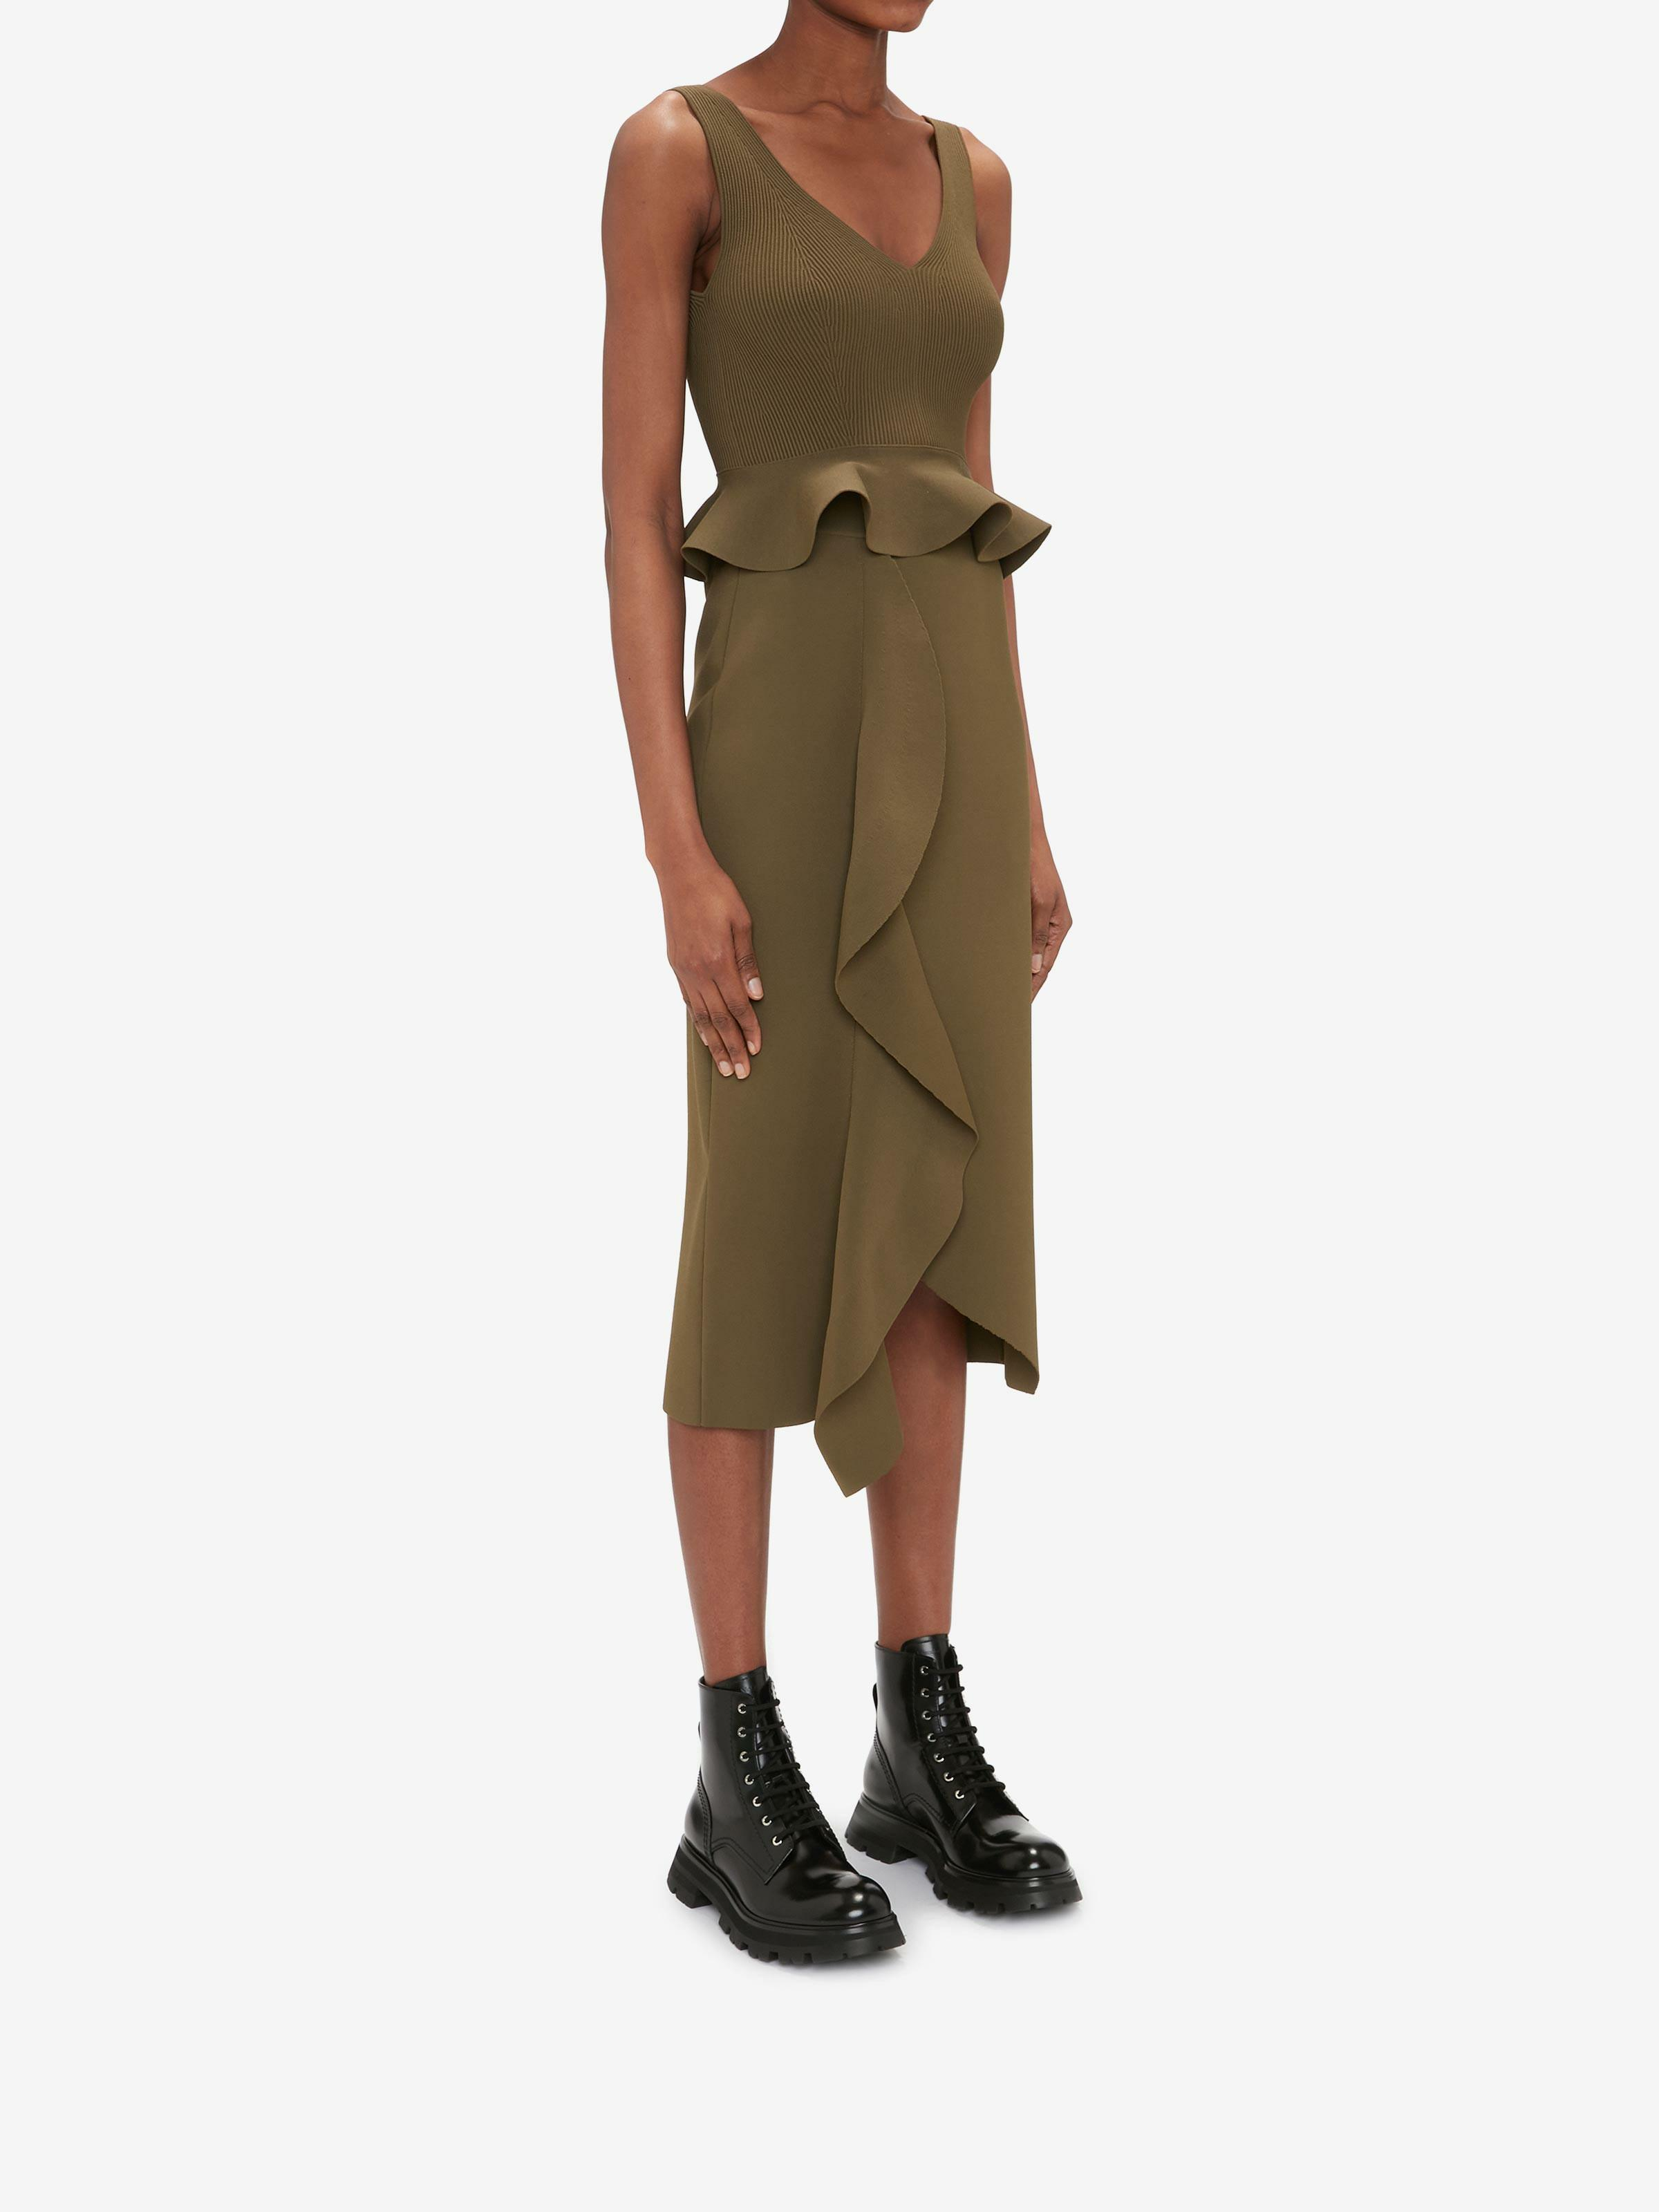 Engineered Sculpted Knit Pencil Skirt 1